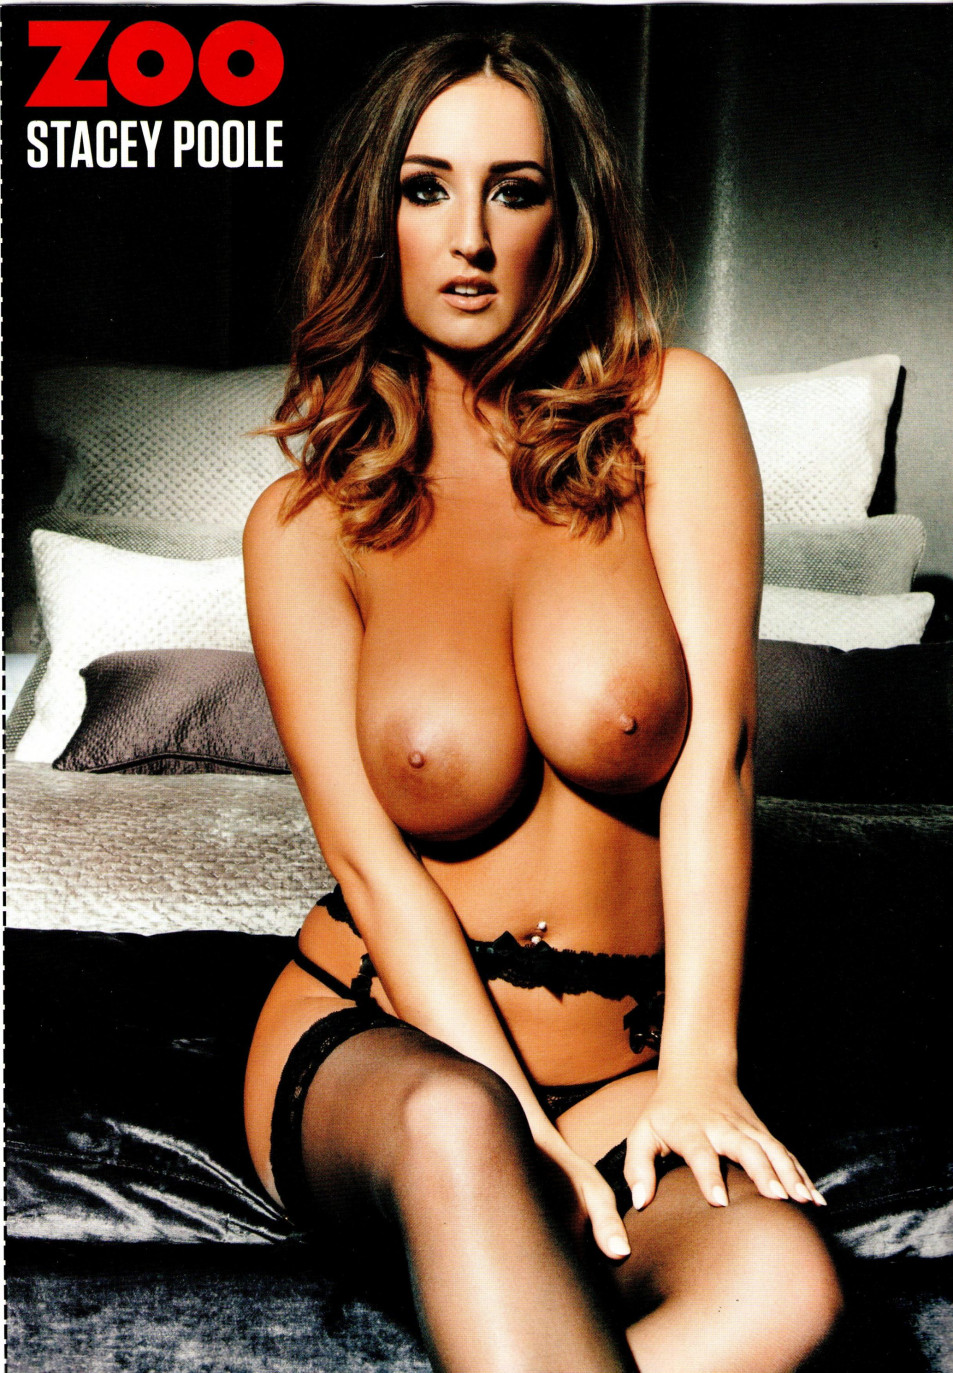 Busty-Brunettes-Stacey-Poole-Naked-For-Zoo-Mag-4.jpg